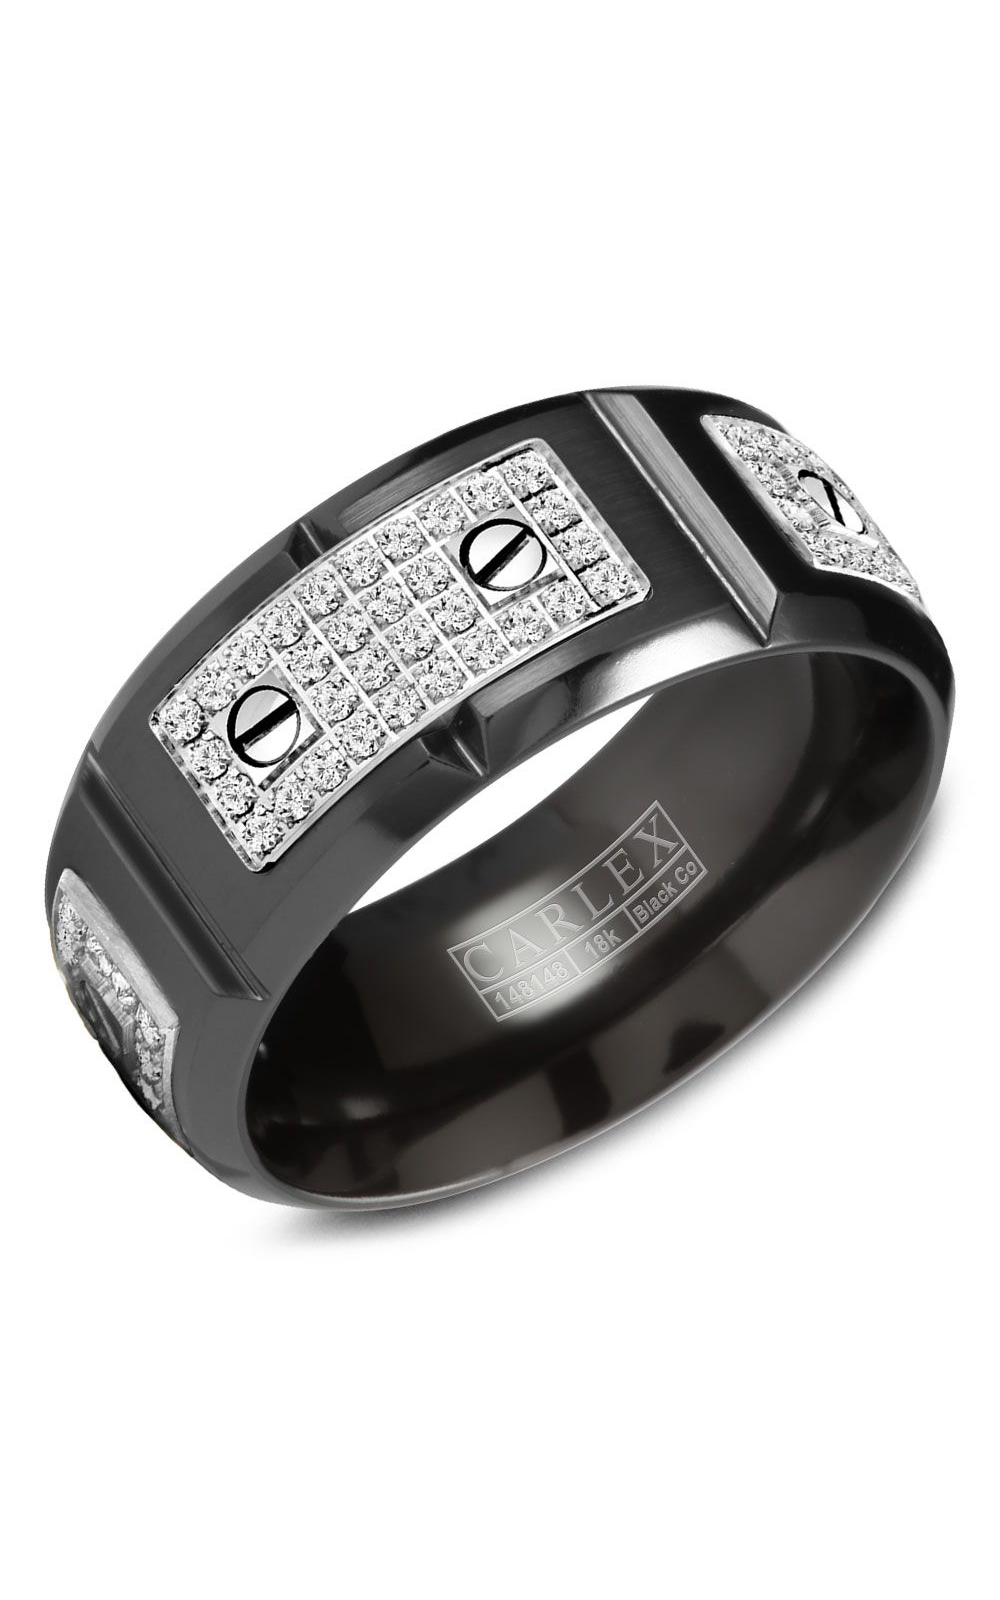 Carlex Sport Men's Wedding Band WB-9792WB product image